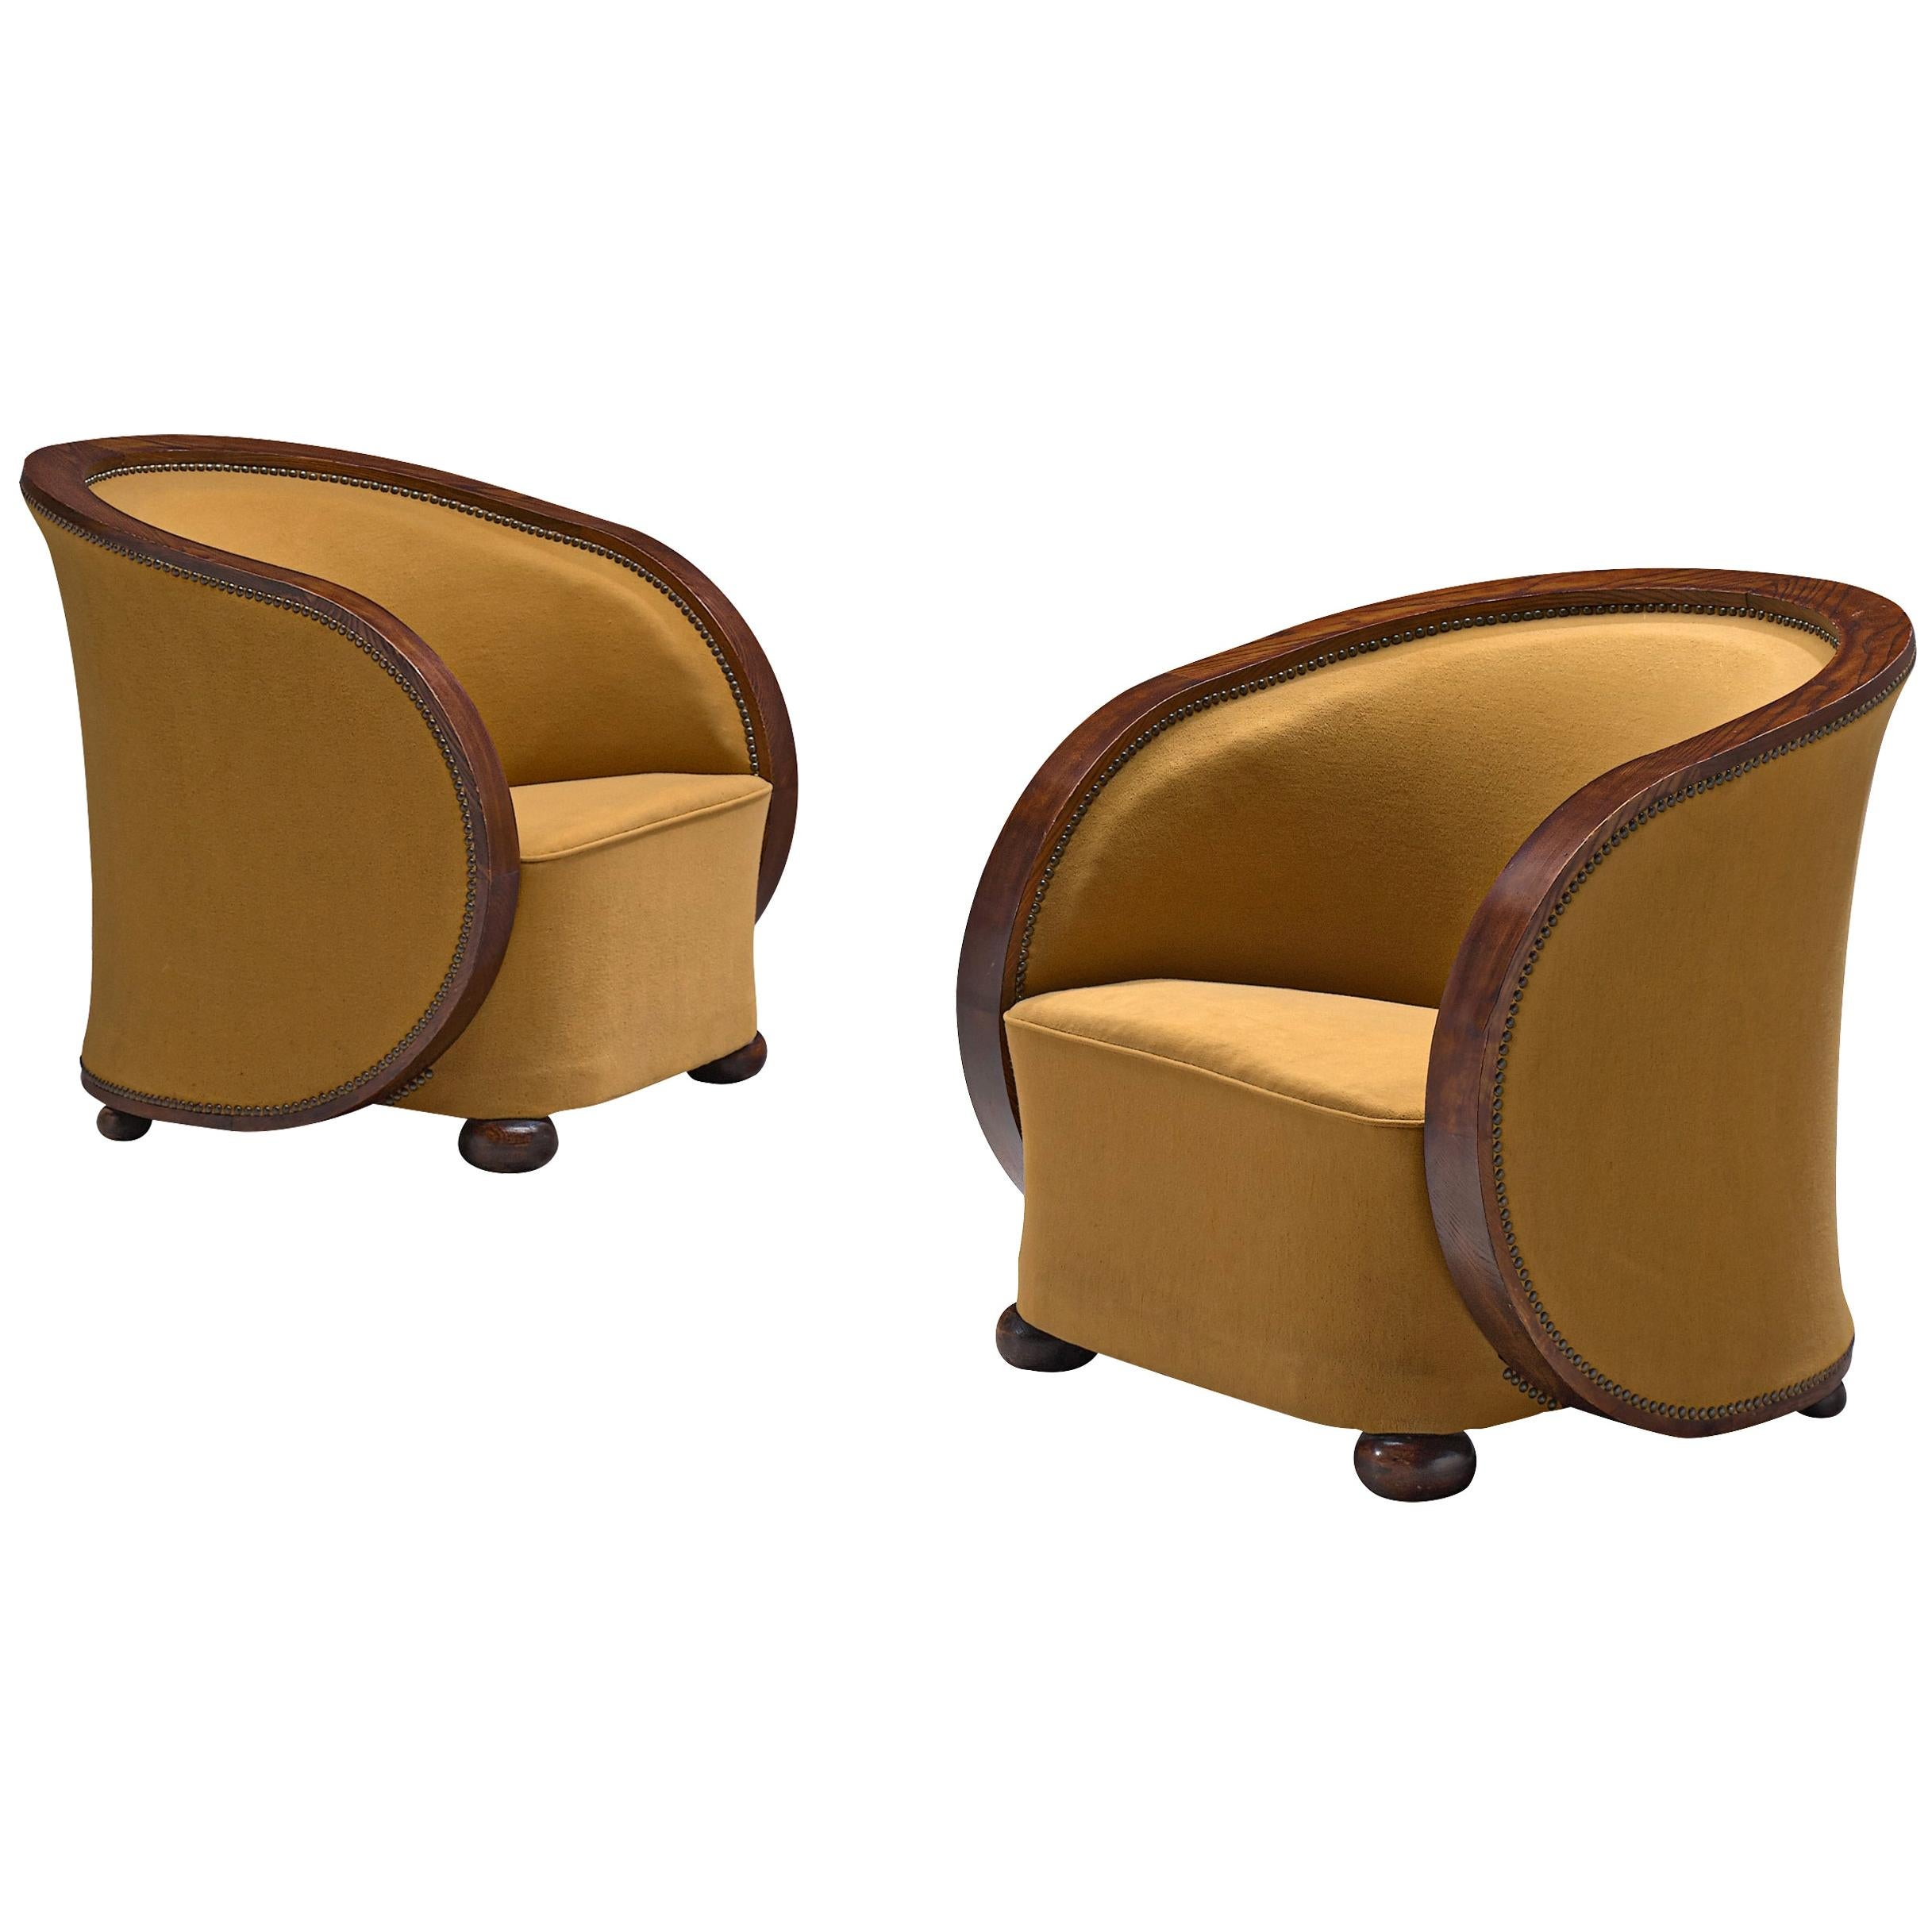 Pair of French Art Deco Lounge Chairs in Yellow Upholstery